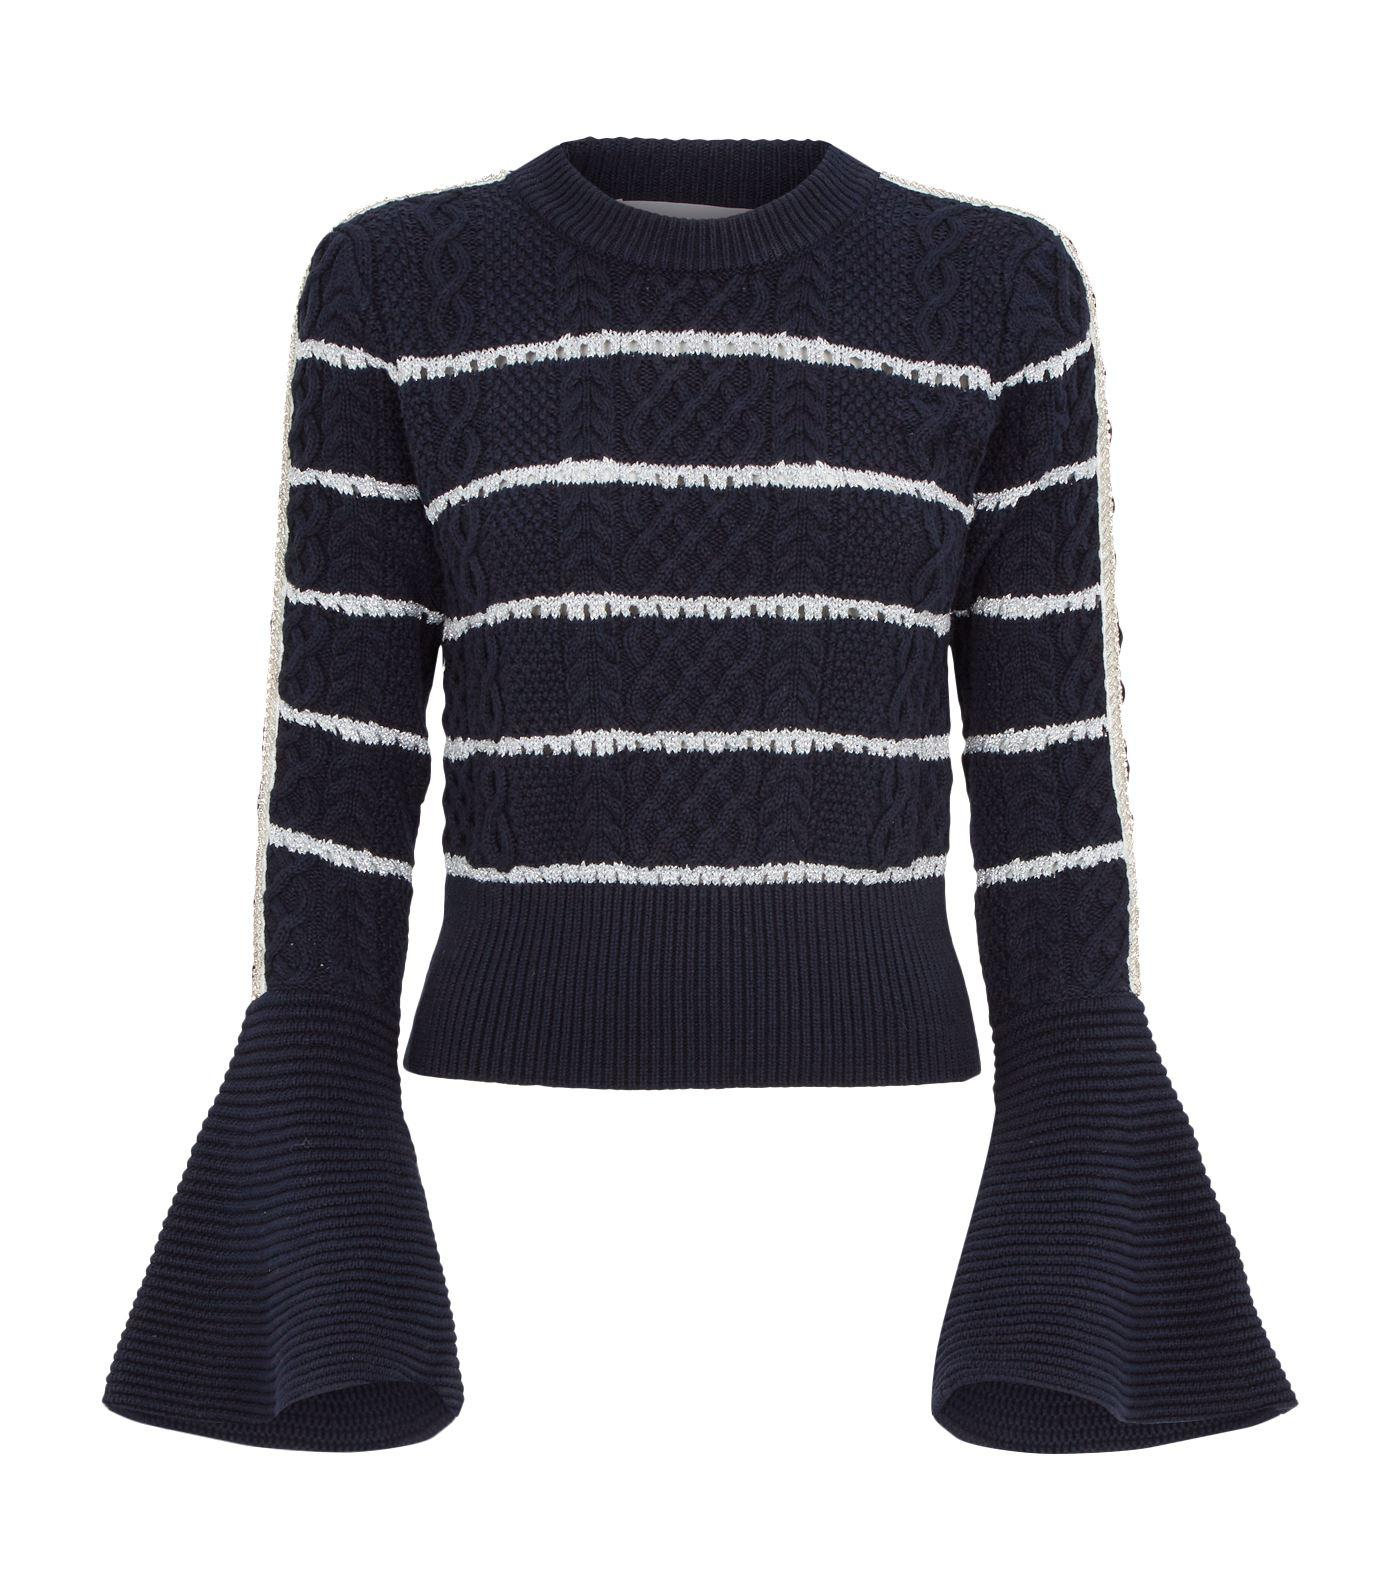 Sweatwater Mens Crew Neck Long-Sleeve Pullover Casual Knitwear Top Jumper Sweaters